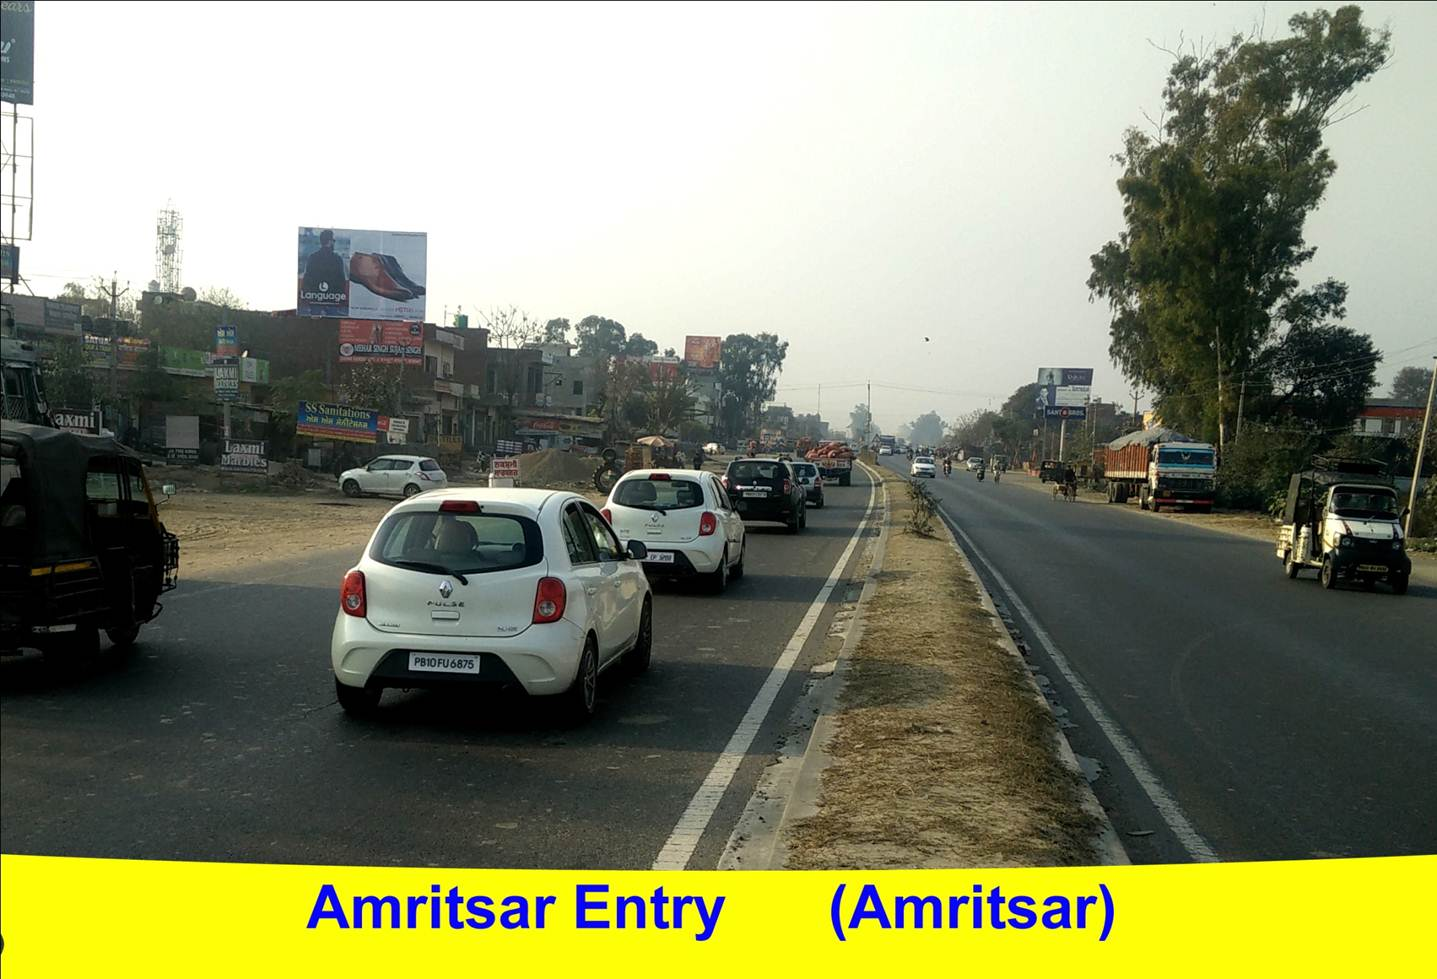 Airport Entry, Amritsar